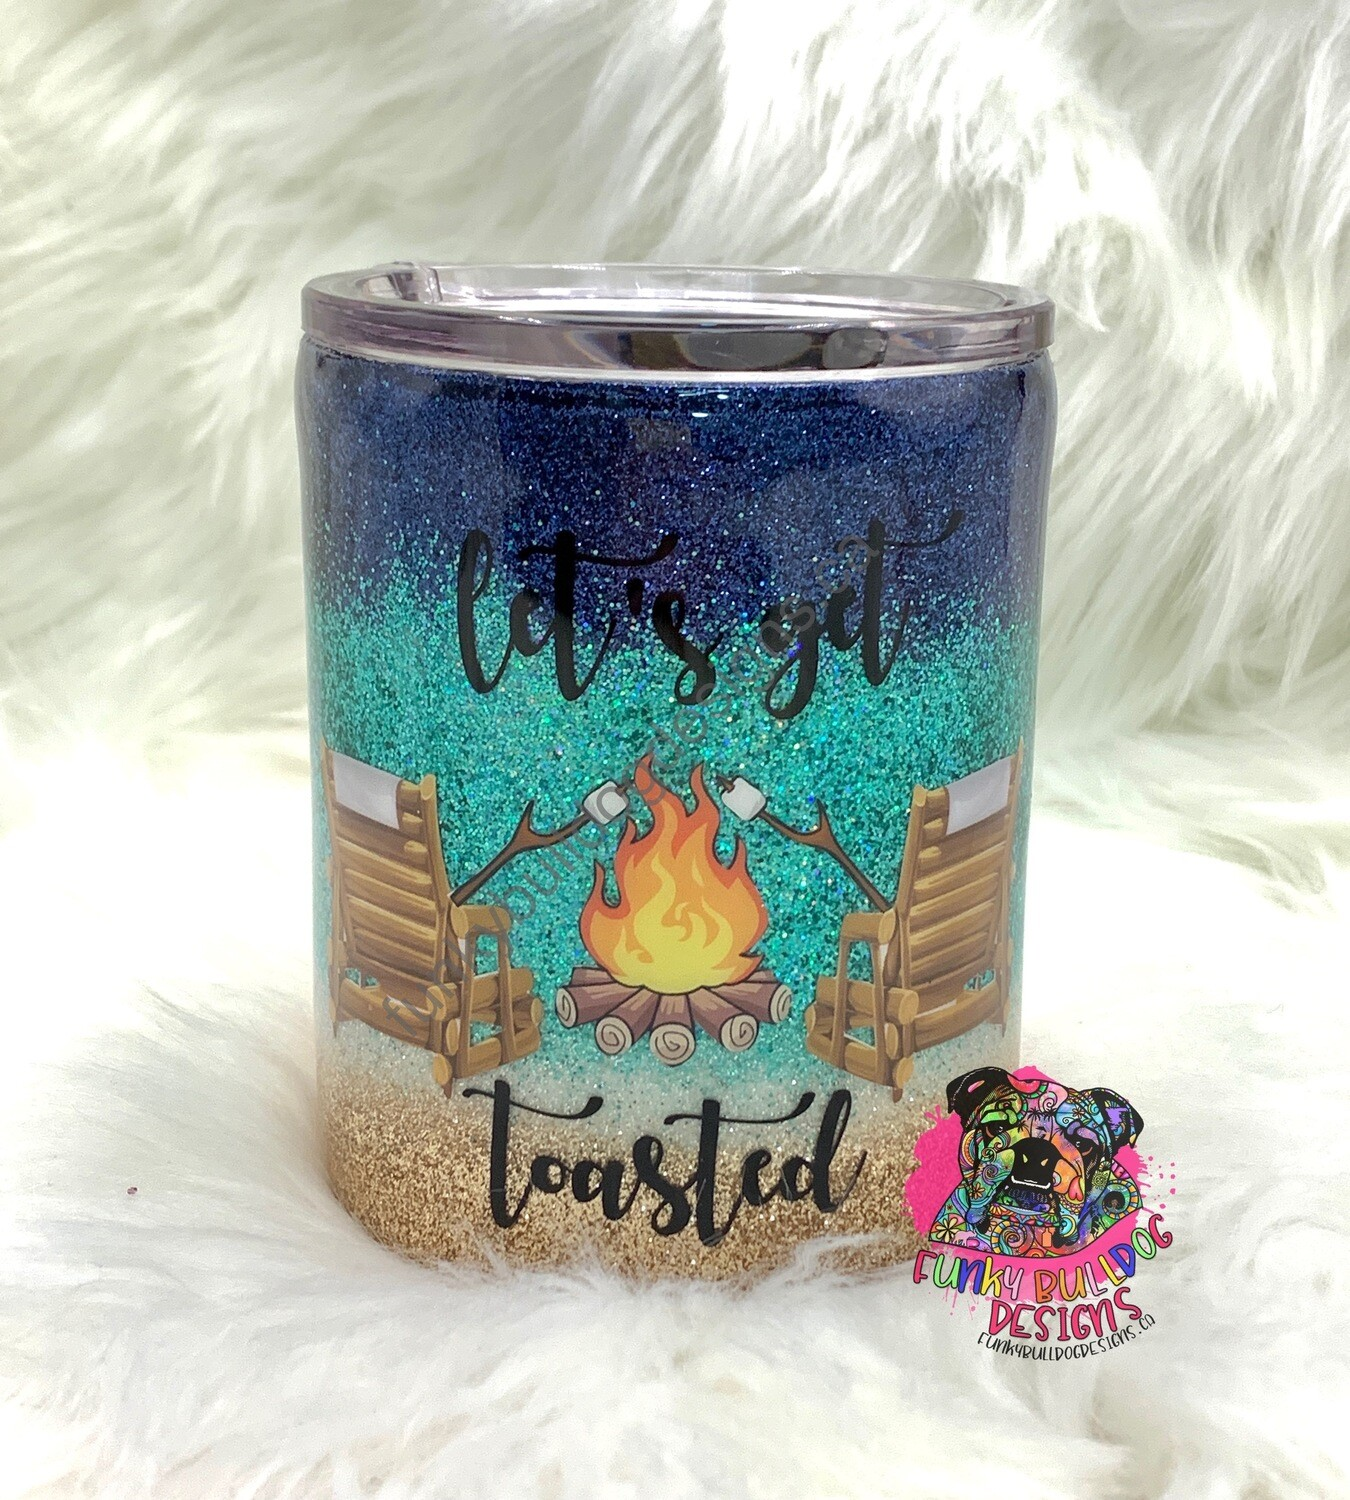 14oz glitter stainless steel lowball tumbler - let's get toasted